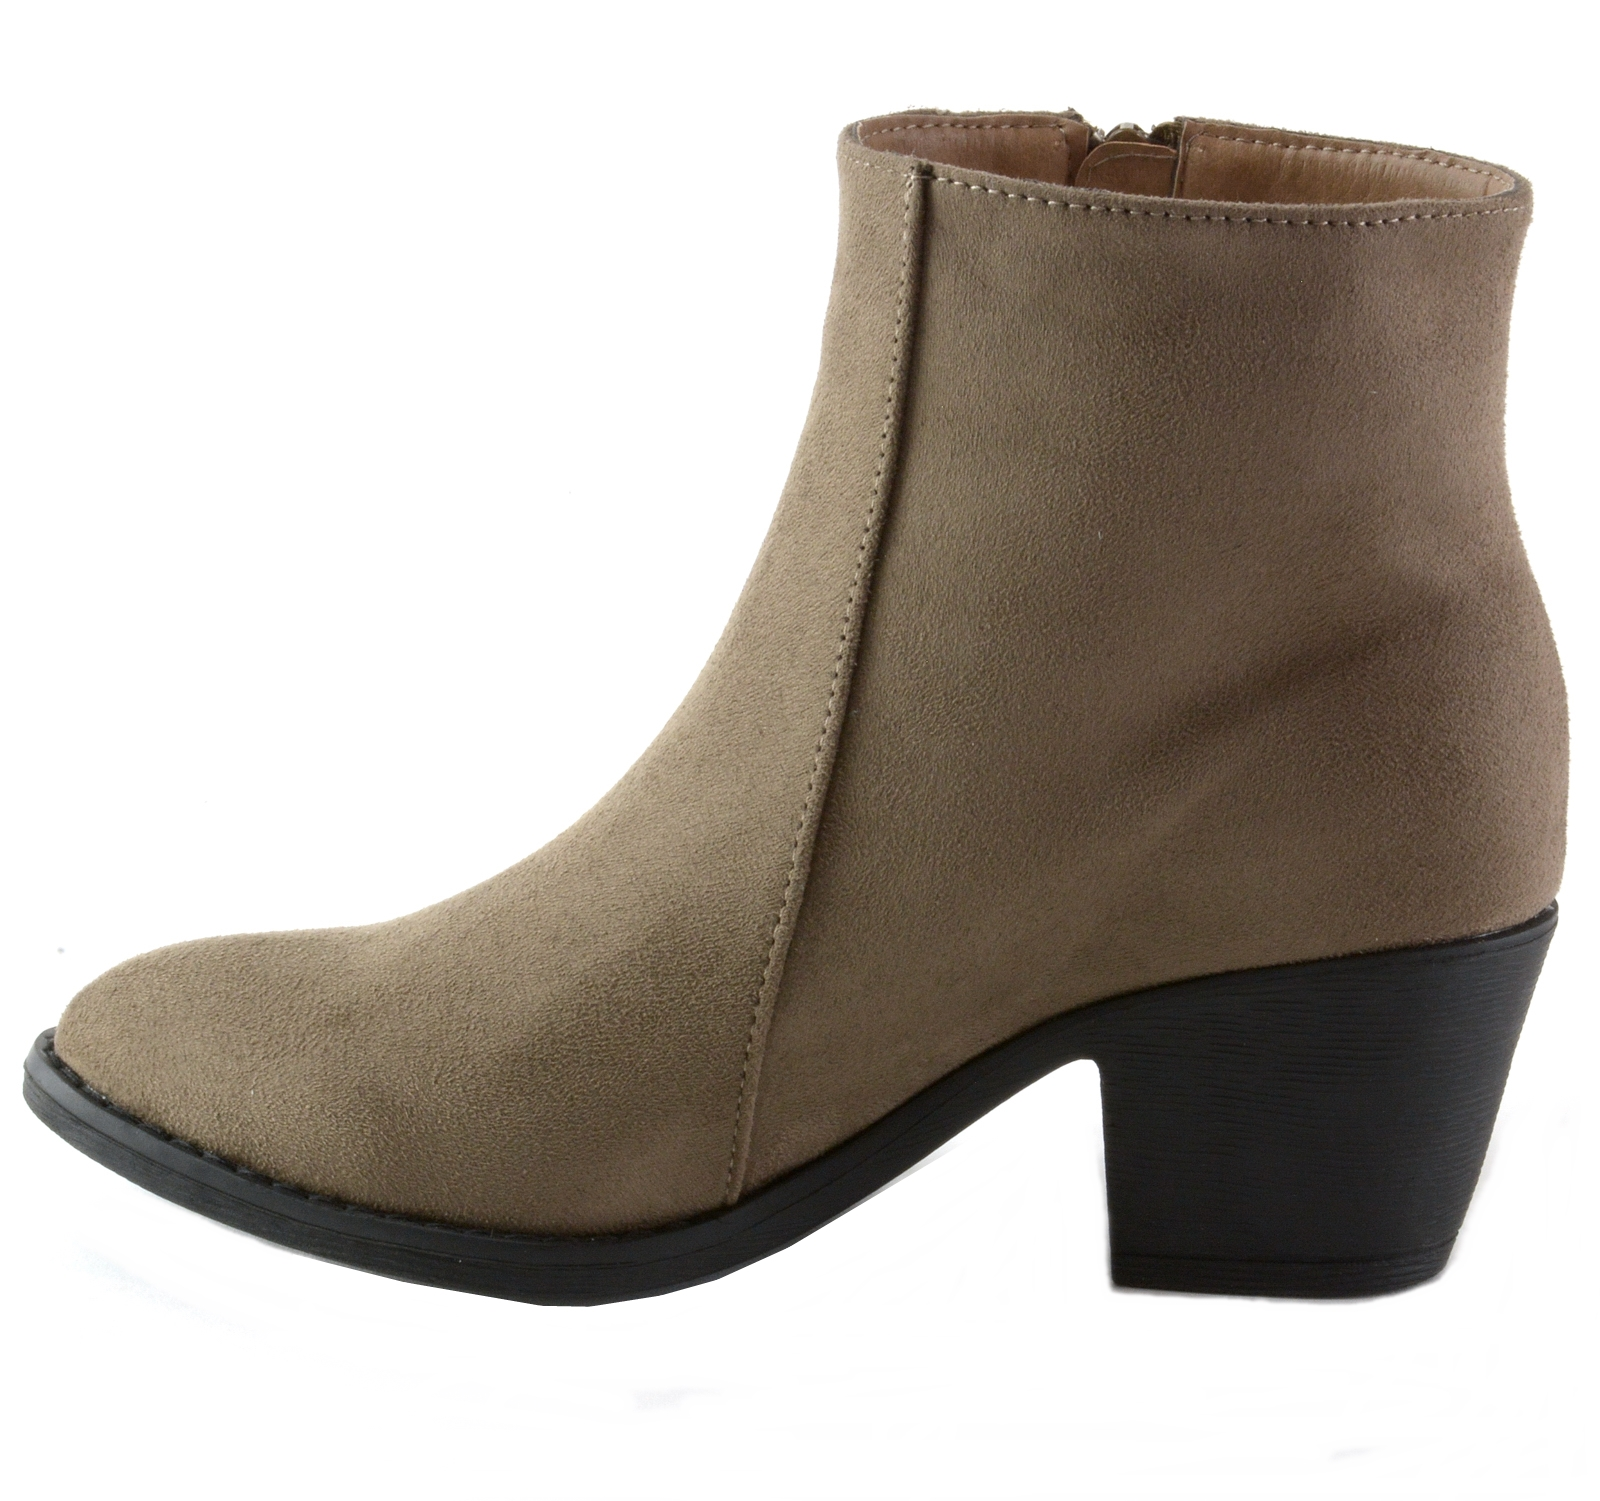 Alpine-Swiss-Arosa-Womens-Ankle-Boots-Fringe-Shoes-Block-High-Heel-Micro-Suede thumbnail 21